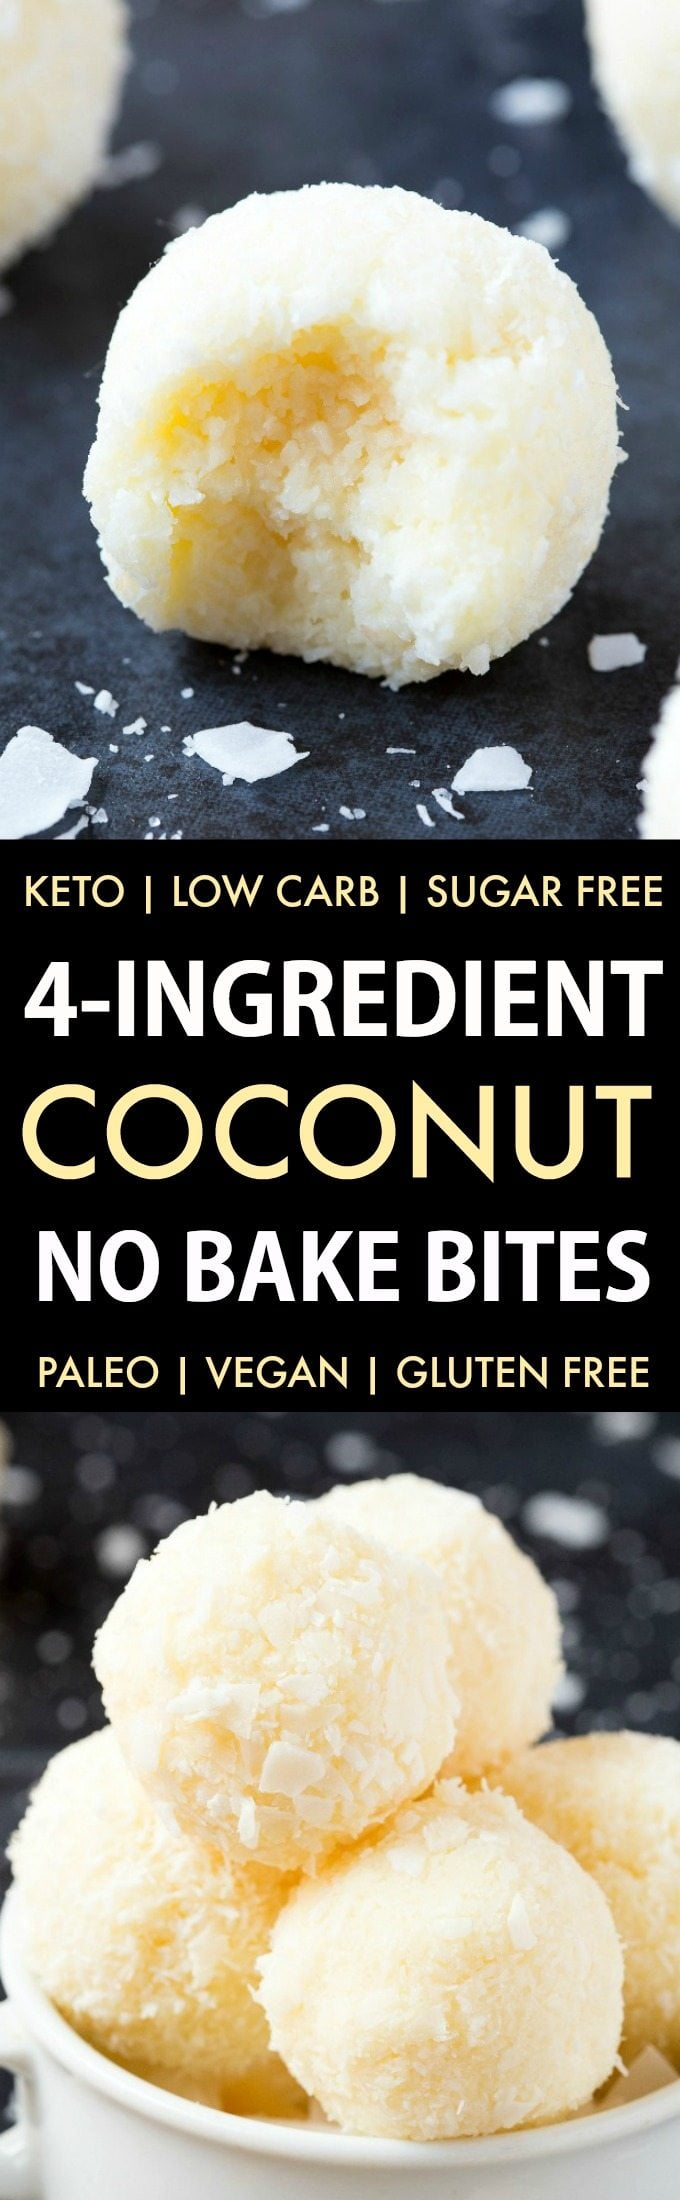 Easy and healthy no bake coconut bites made without condensed milk and needing just 4 ingredients. Made with coconut and almond flour, these paleo and vegan snacks take less than 5 minutes to whip up- They taste like raffaello! Keto, Sugar free, Low Carb.